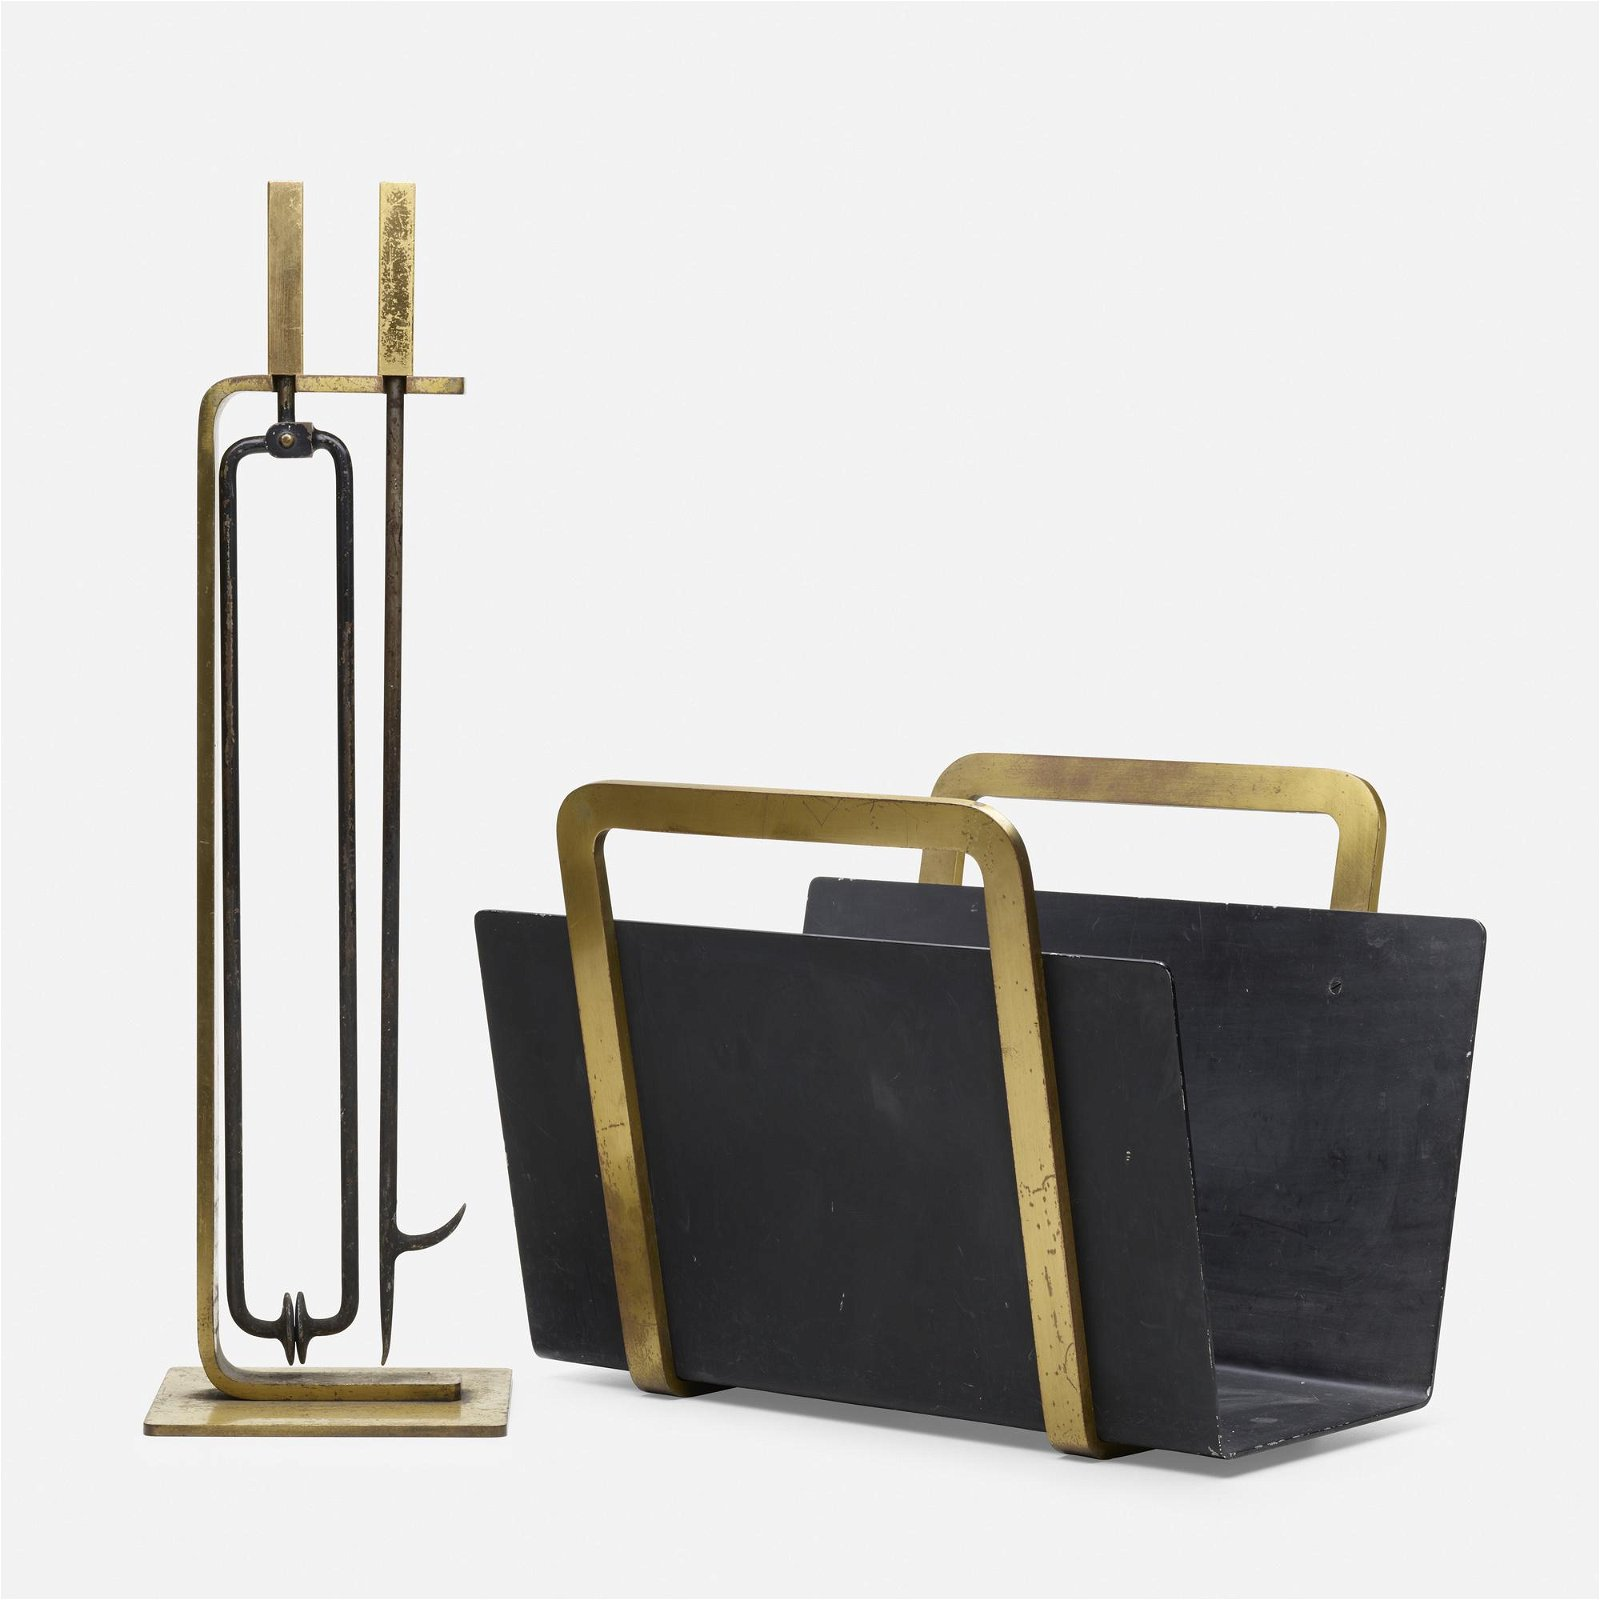 Modernist, fireplace accessories